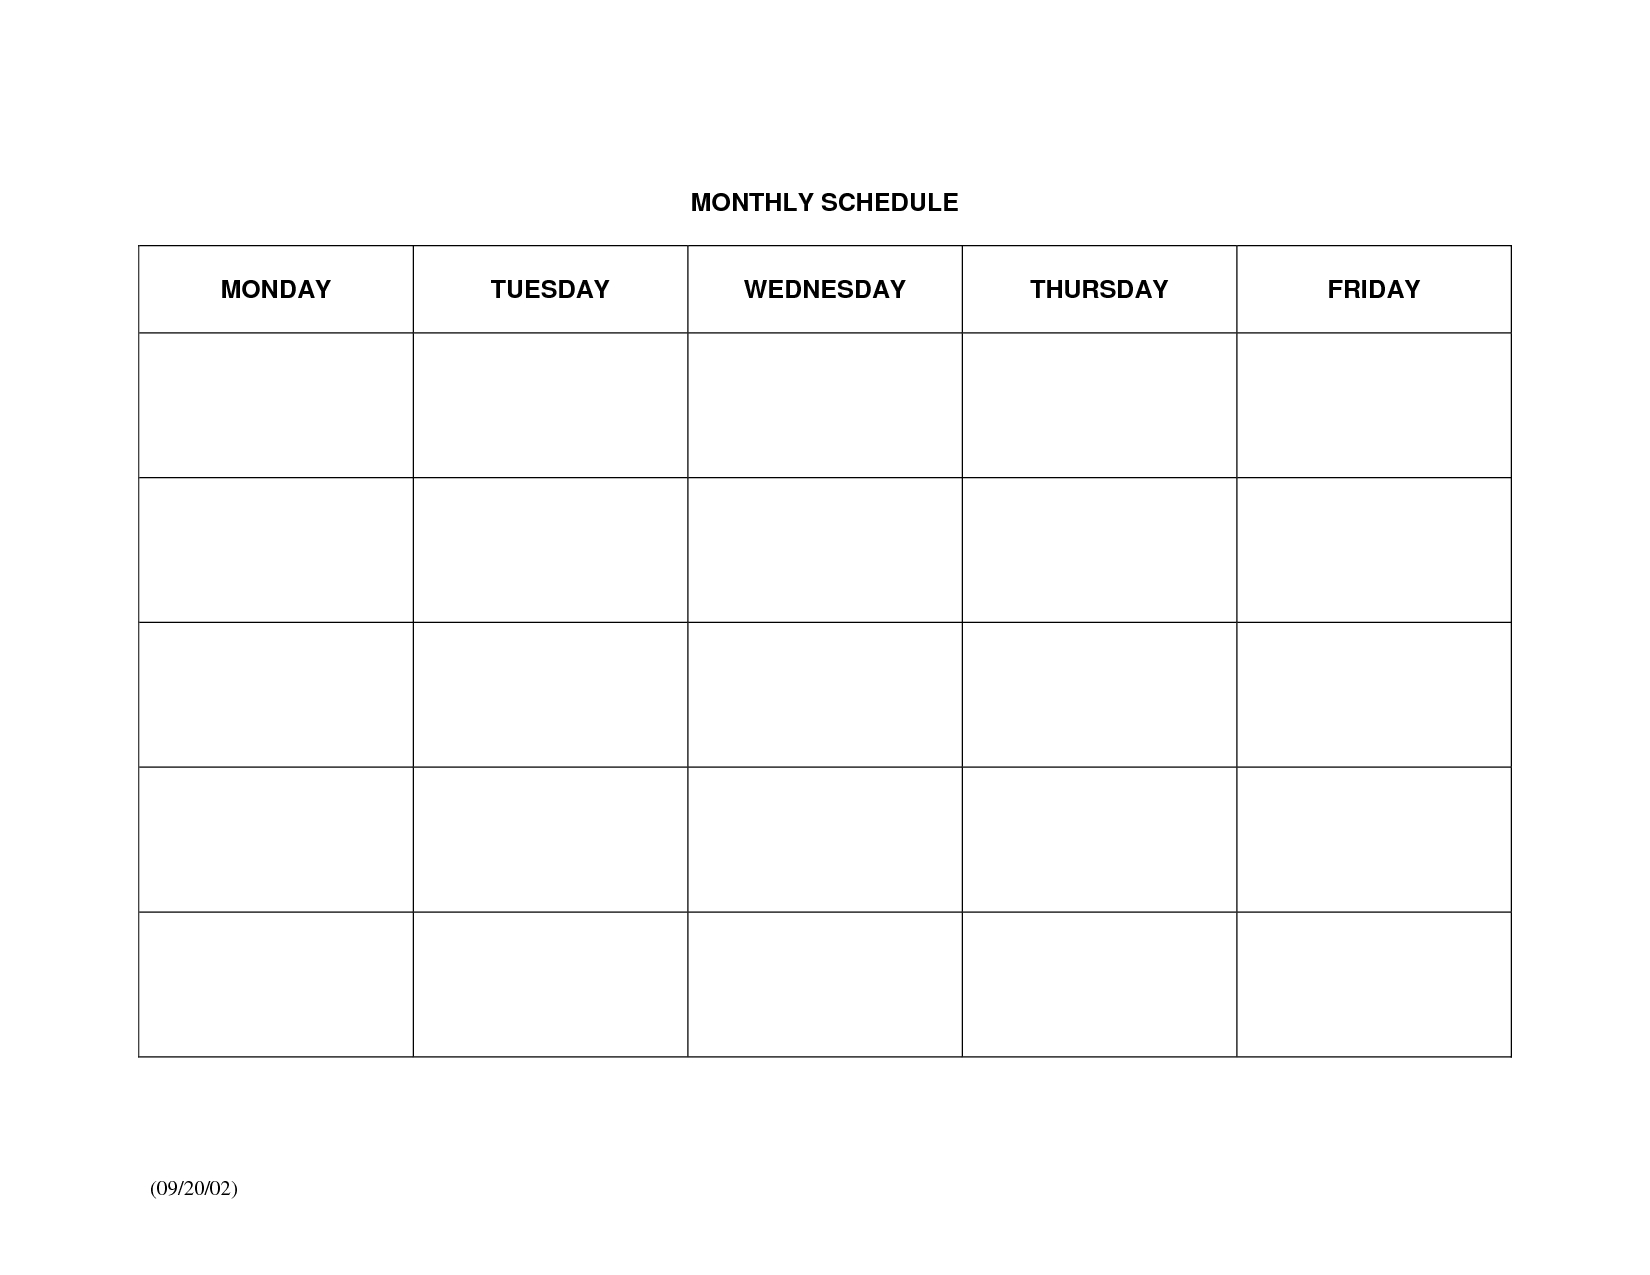 Schedule Template Monthly Calendar Printable Large Blank Weekly Free  Printable Monthly Calendar With Lines Large